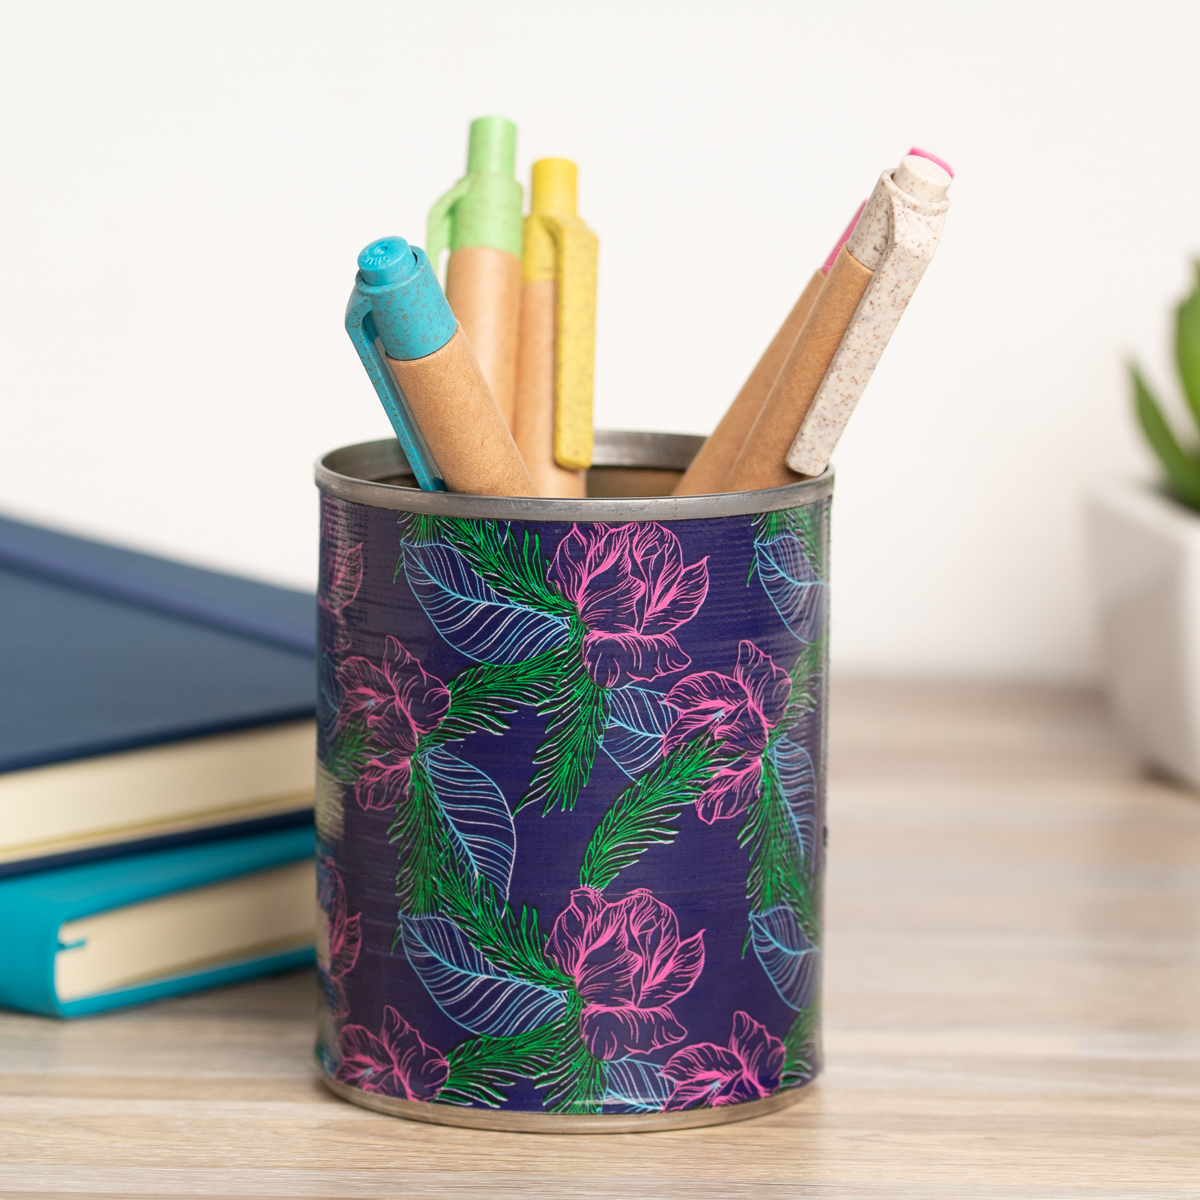 Simply-Genius-Duct-Tape-Roll-Colors-Patterns-Craft-Supplies-Colored-amp-Patterned thumbnail 100